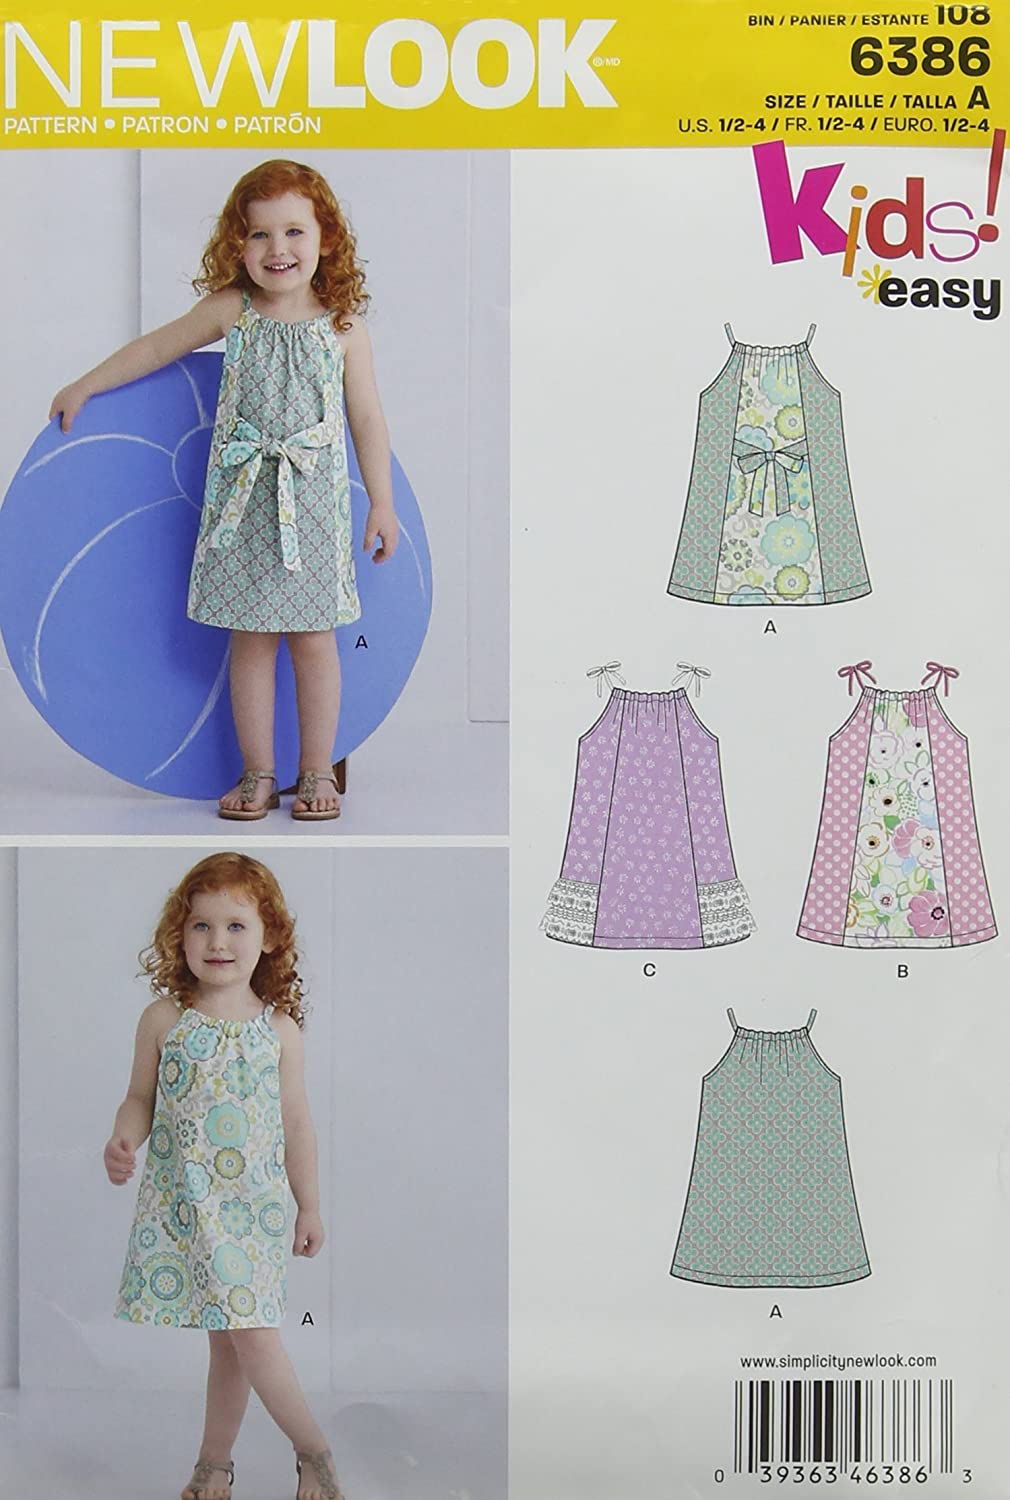 New Look 6386 4 years warranty Toddlers' Easy Kit Ranking integrated 1st place Pillowcase Sewing Size Dresses